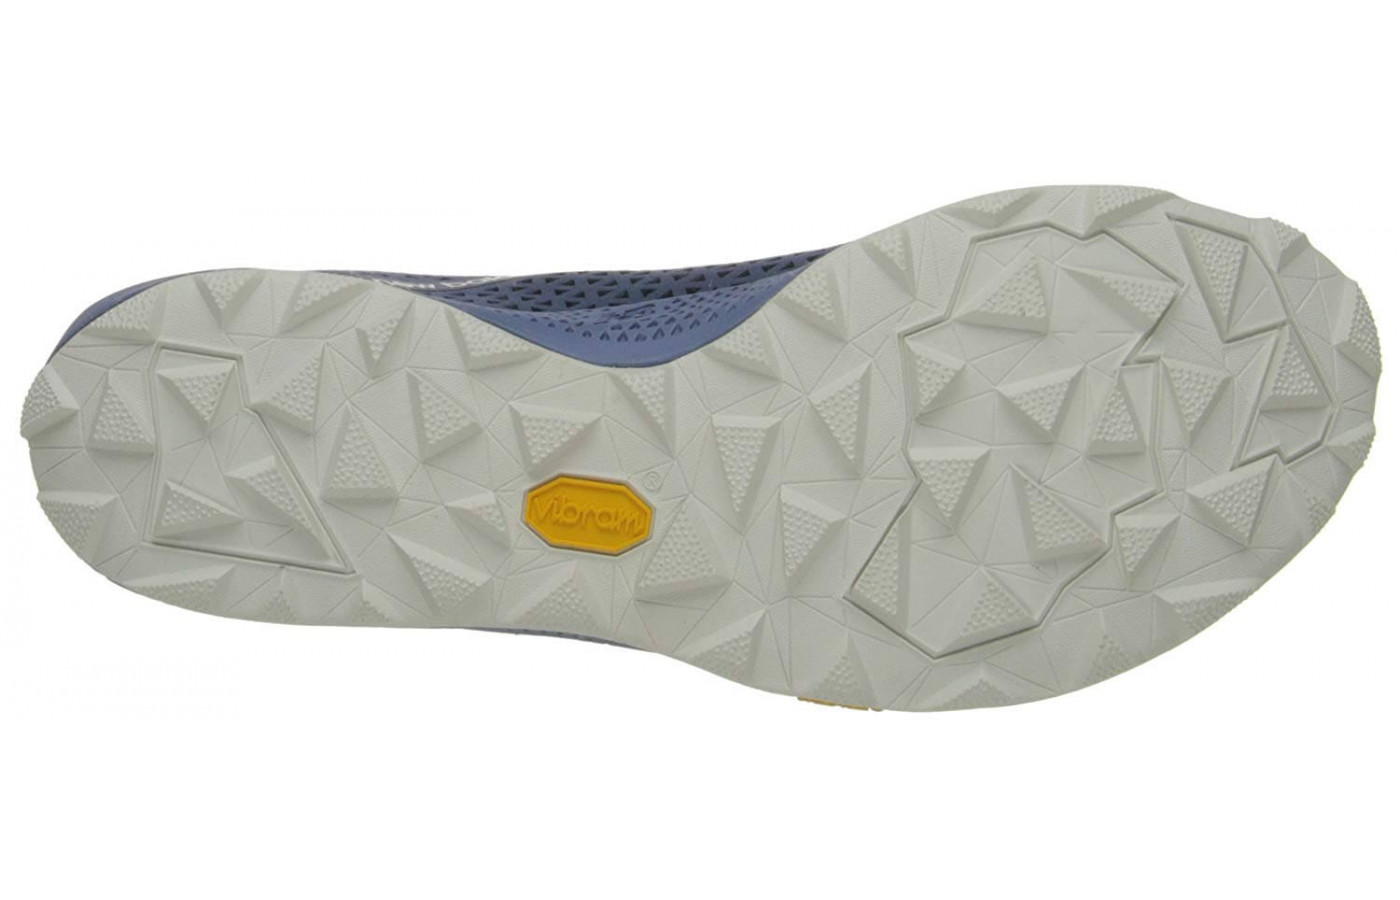 New Balance Minimus 10V4 Bottom